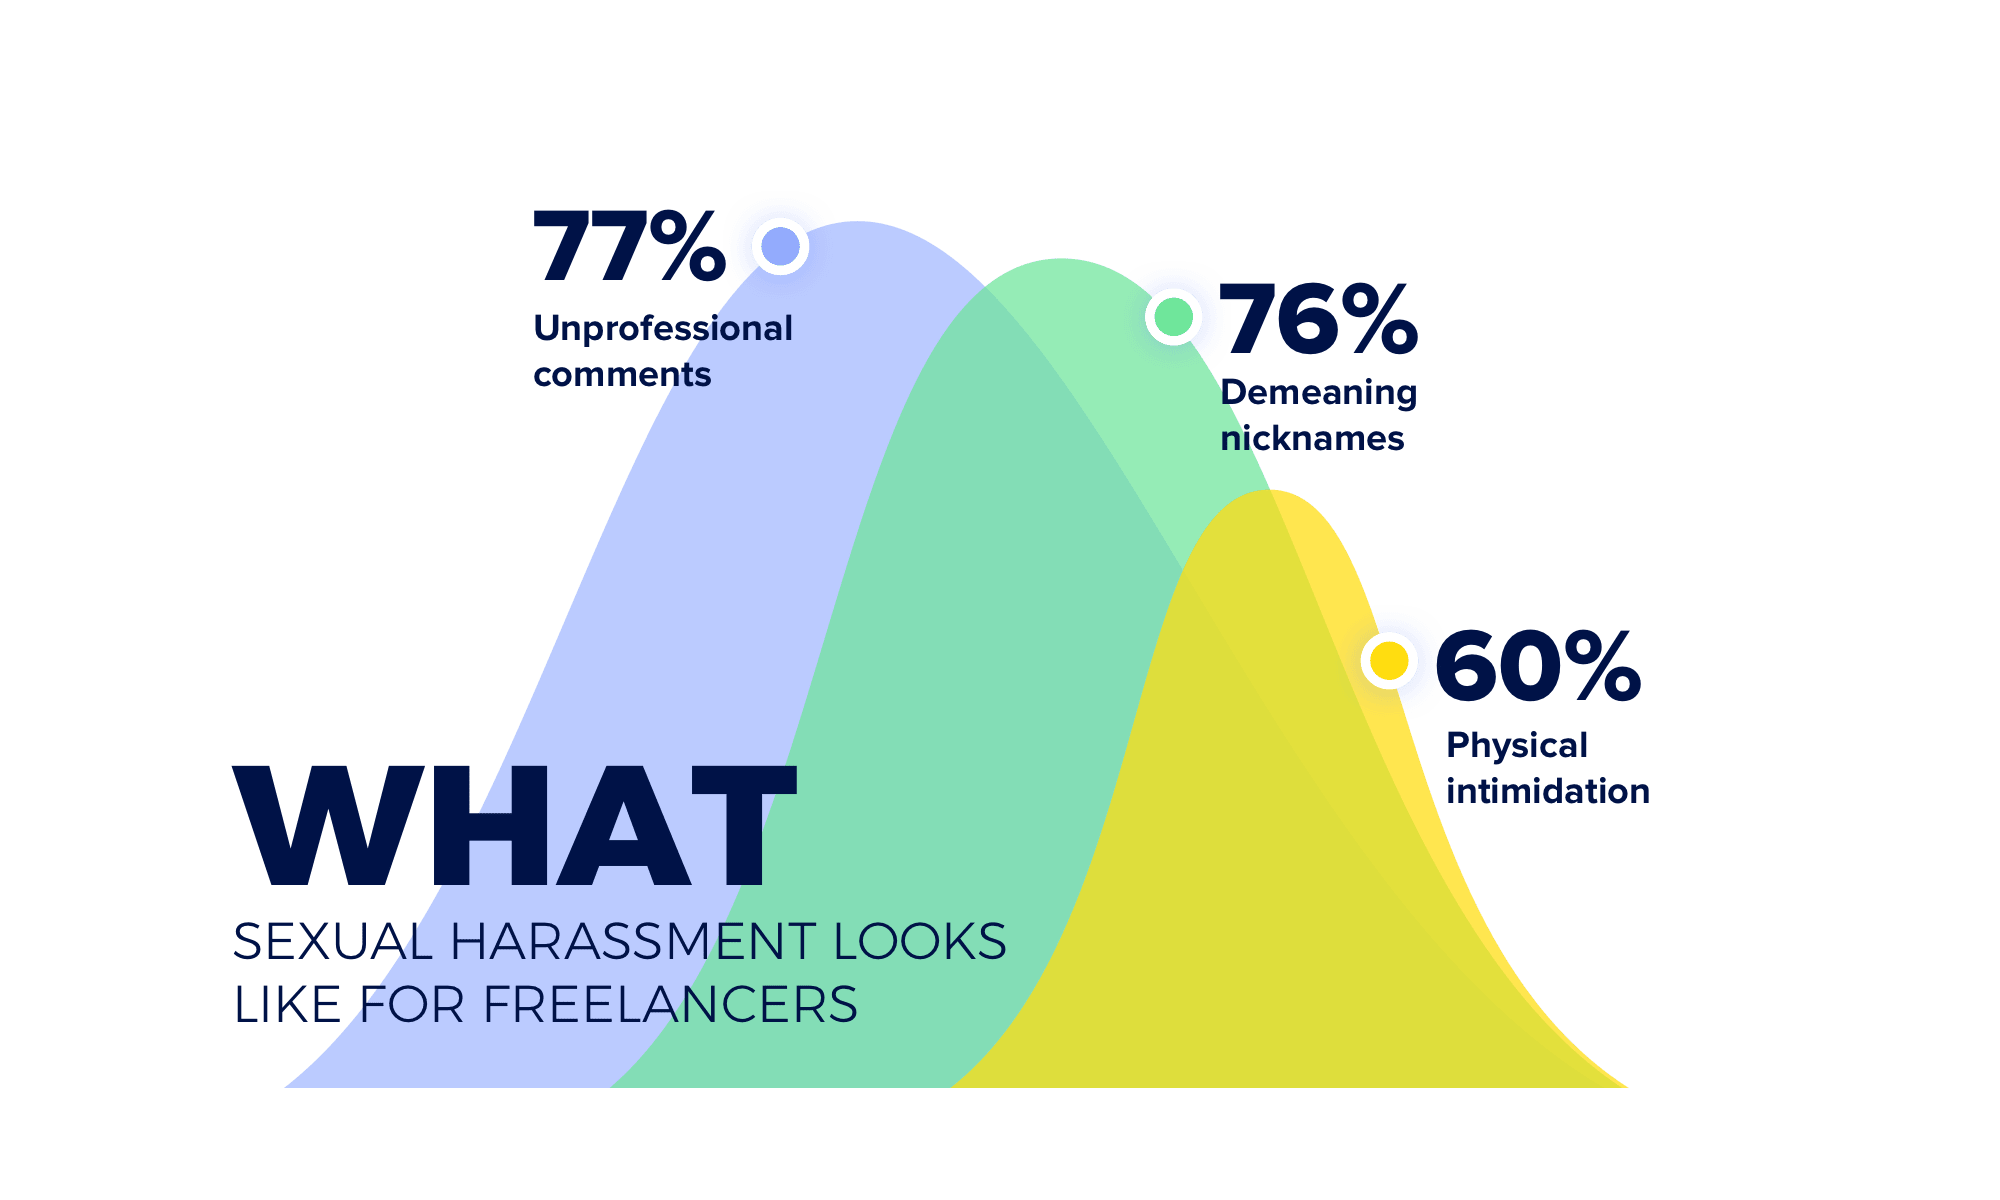 The nature of sexual harassment for freelancers and creative entrepreneurs varies:  77% experienced unprofessional comments on appearance, 76% have been called demeaning nicknames, and 60% have been the victims of physical intimidation